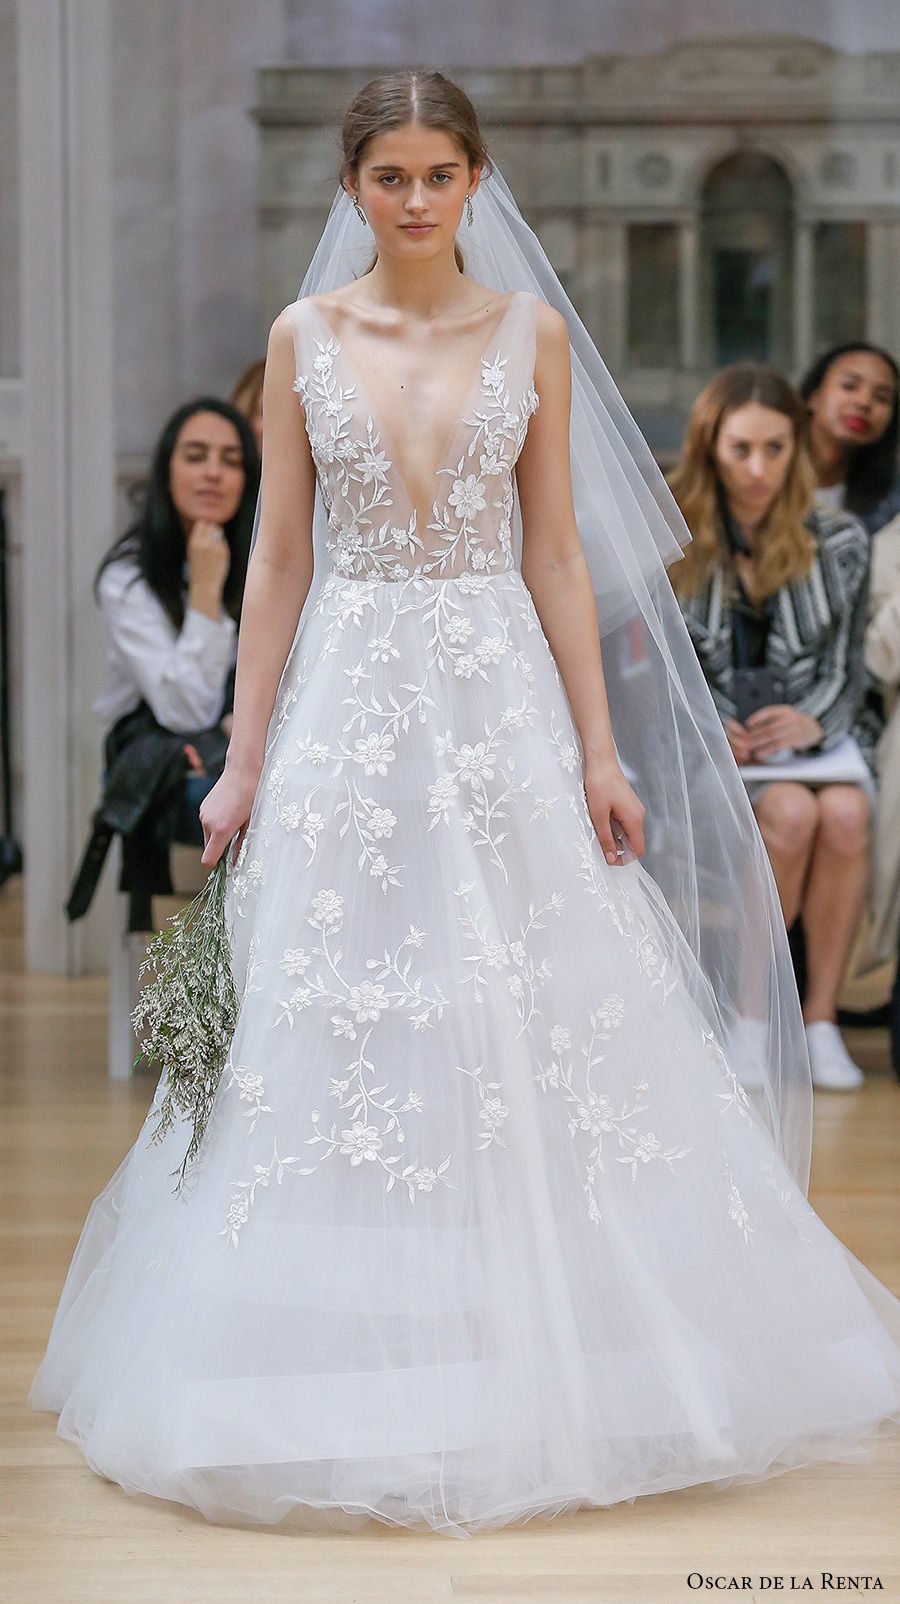 Oscar de la renta spring 2018 wedding dresses new york bridal oscar de la renta spring 2018 bridal sleeveless deep v neck full embellishment beautiful romantic a junglespirit